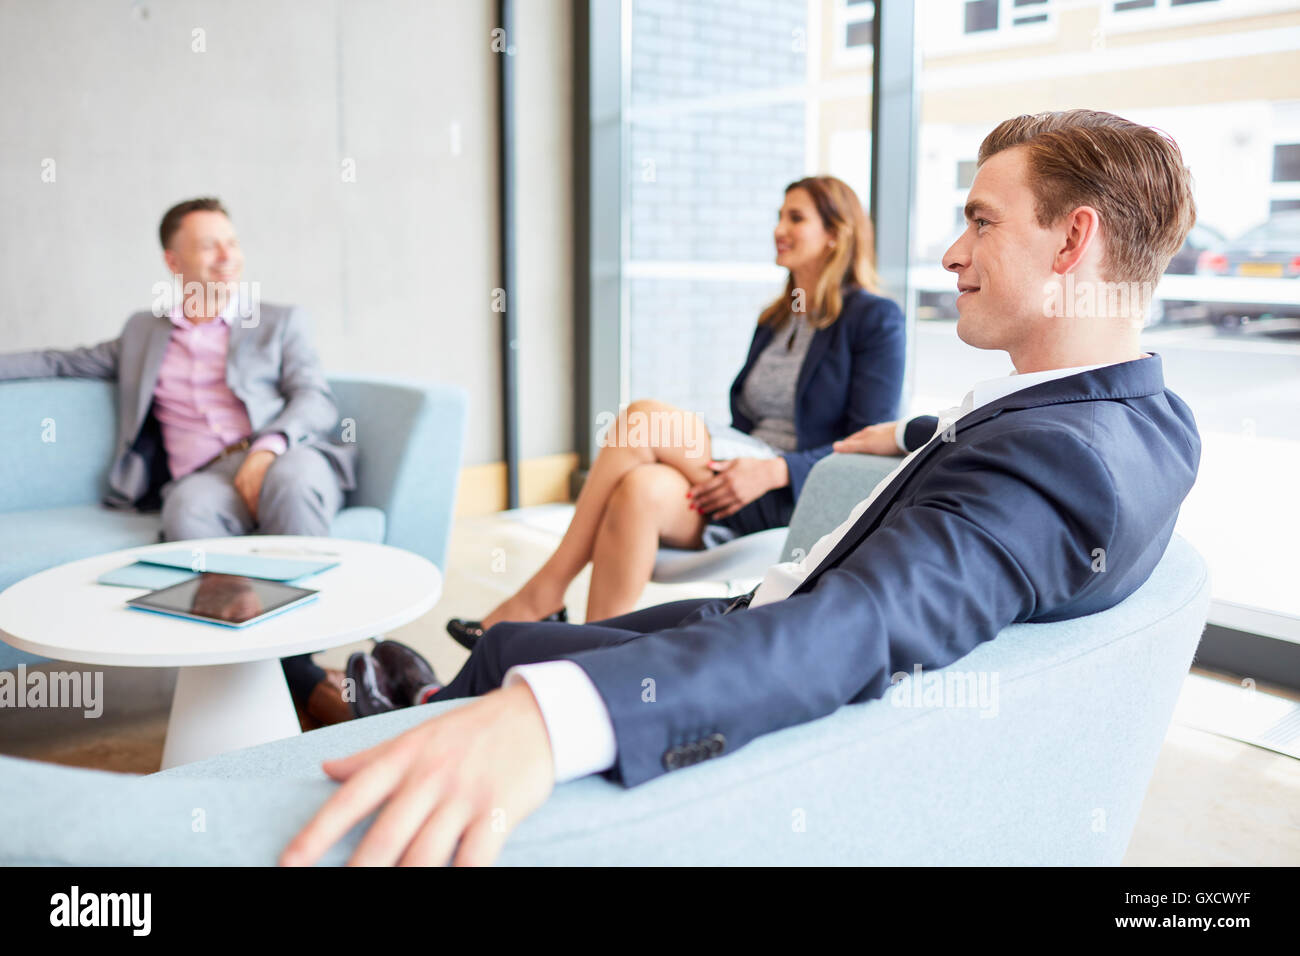 Businessmen and businesswoman meeting on office sofas - Stock Image